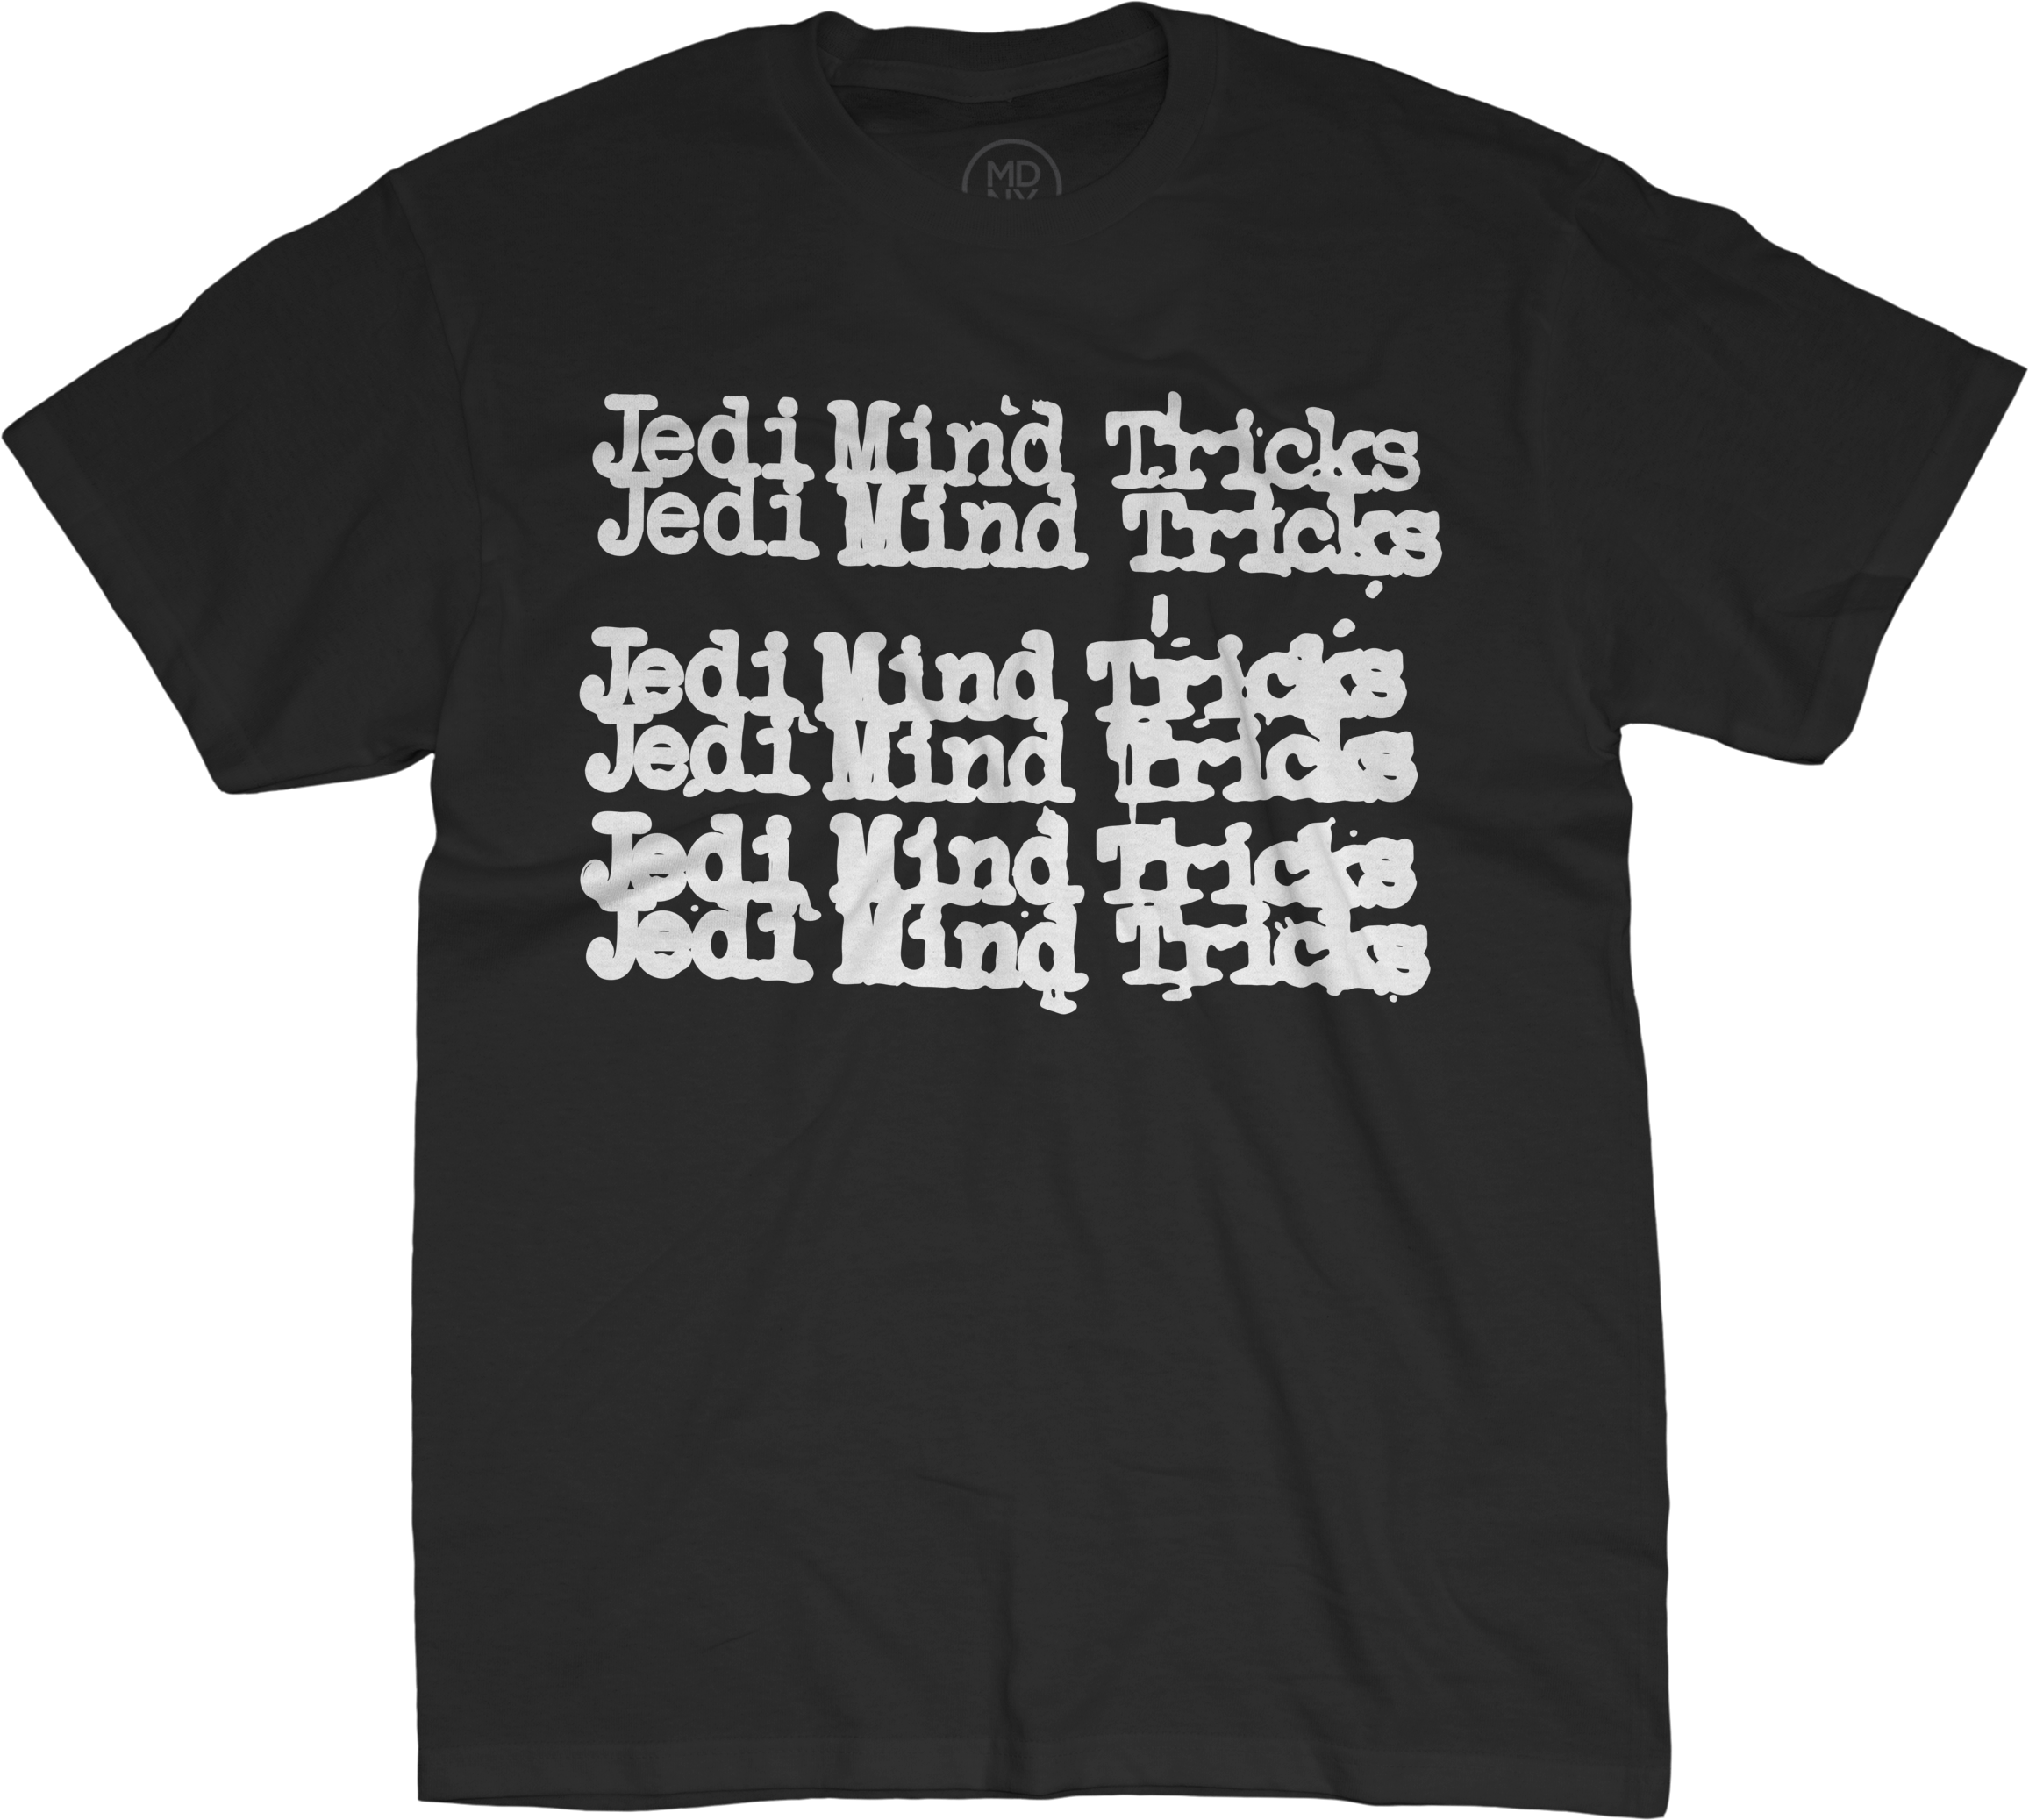 Jedi Mind Tricks Repeat on Black T-Shirt